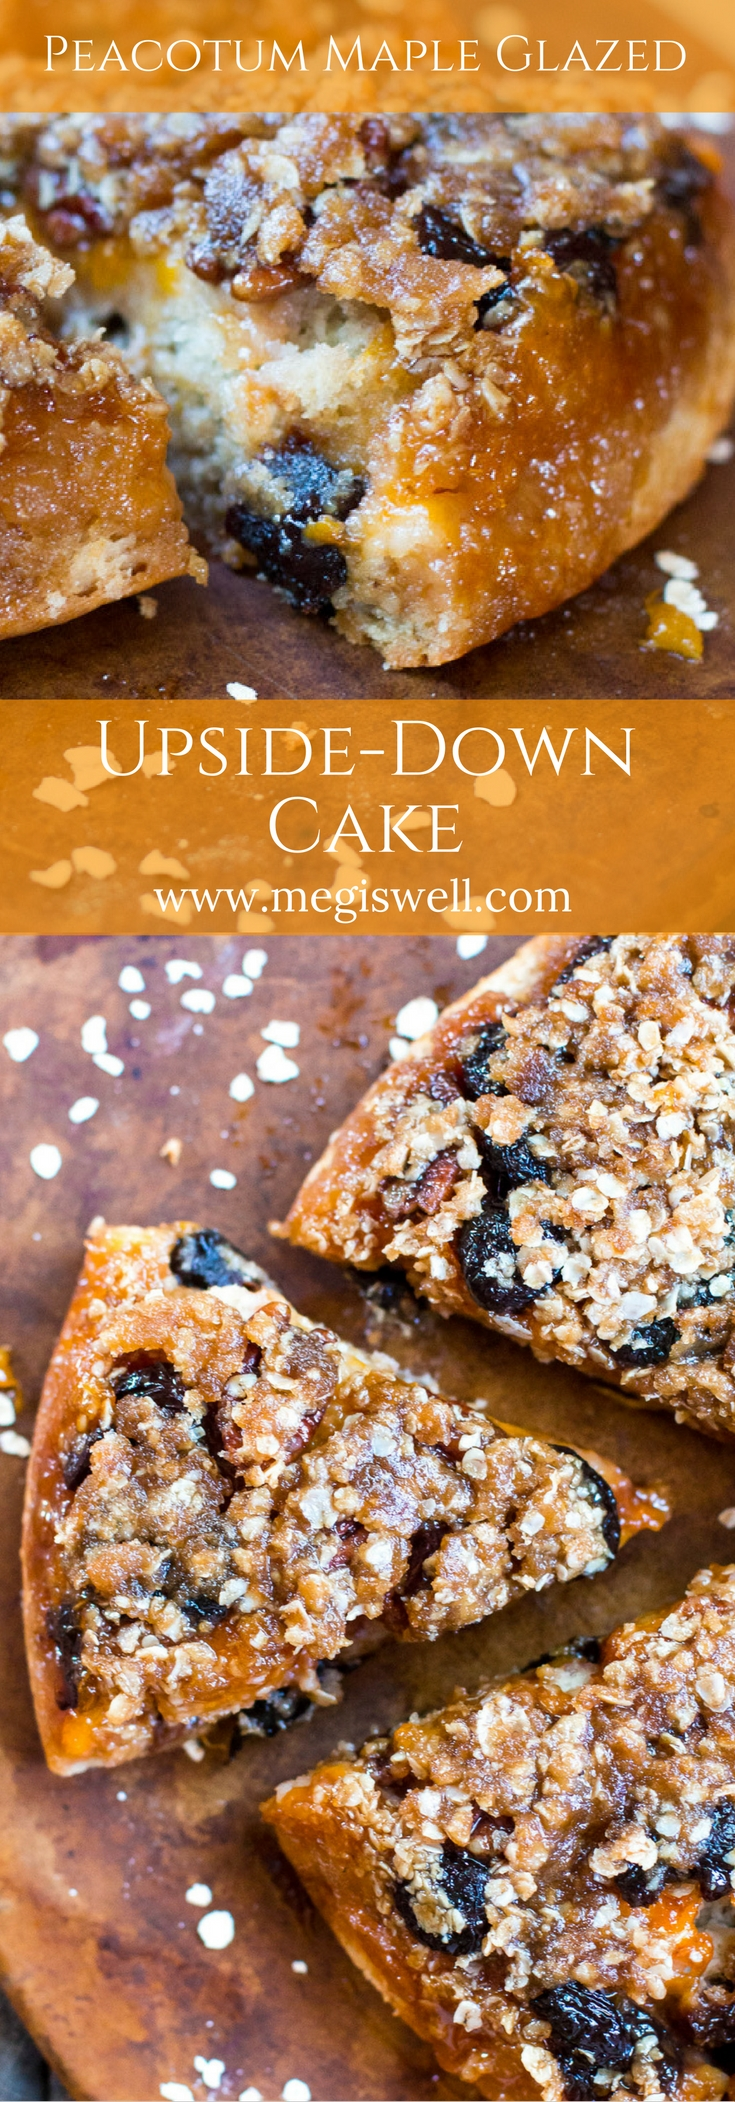 This Peacotum Maple Glazed Upside-Down Cake is wonderful to wake up to! The crumbly buttermilk cake has an amazing glazed top of dried cherries, brown sugar, cinnamon and spice oatmeal, maple syrup, peacotums, and pecans. | www.megiswell.com